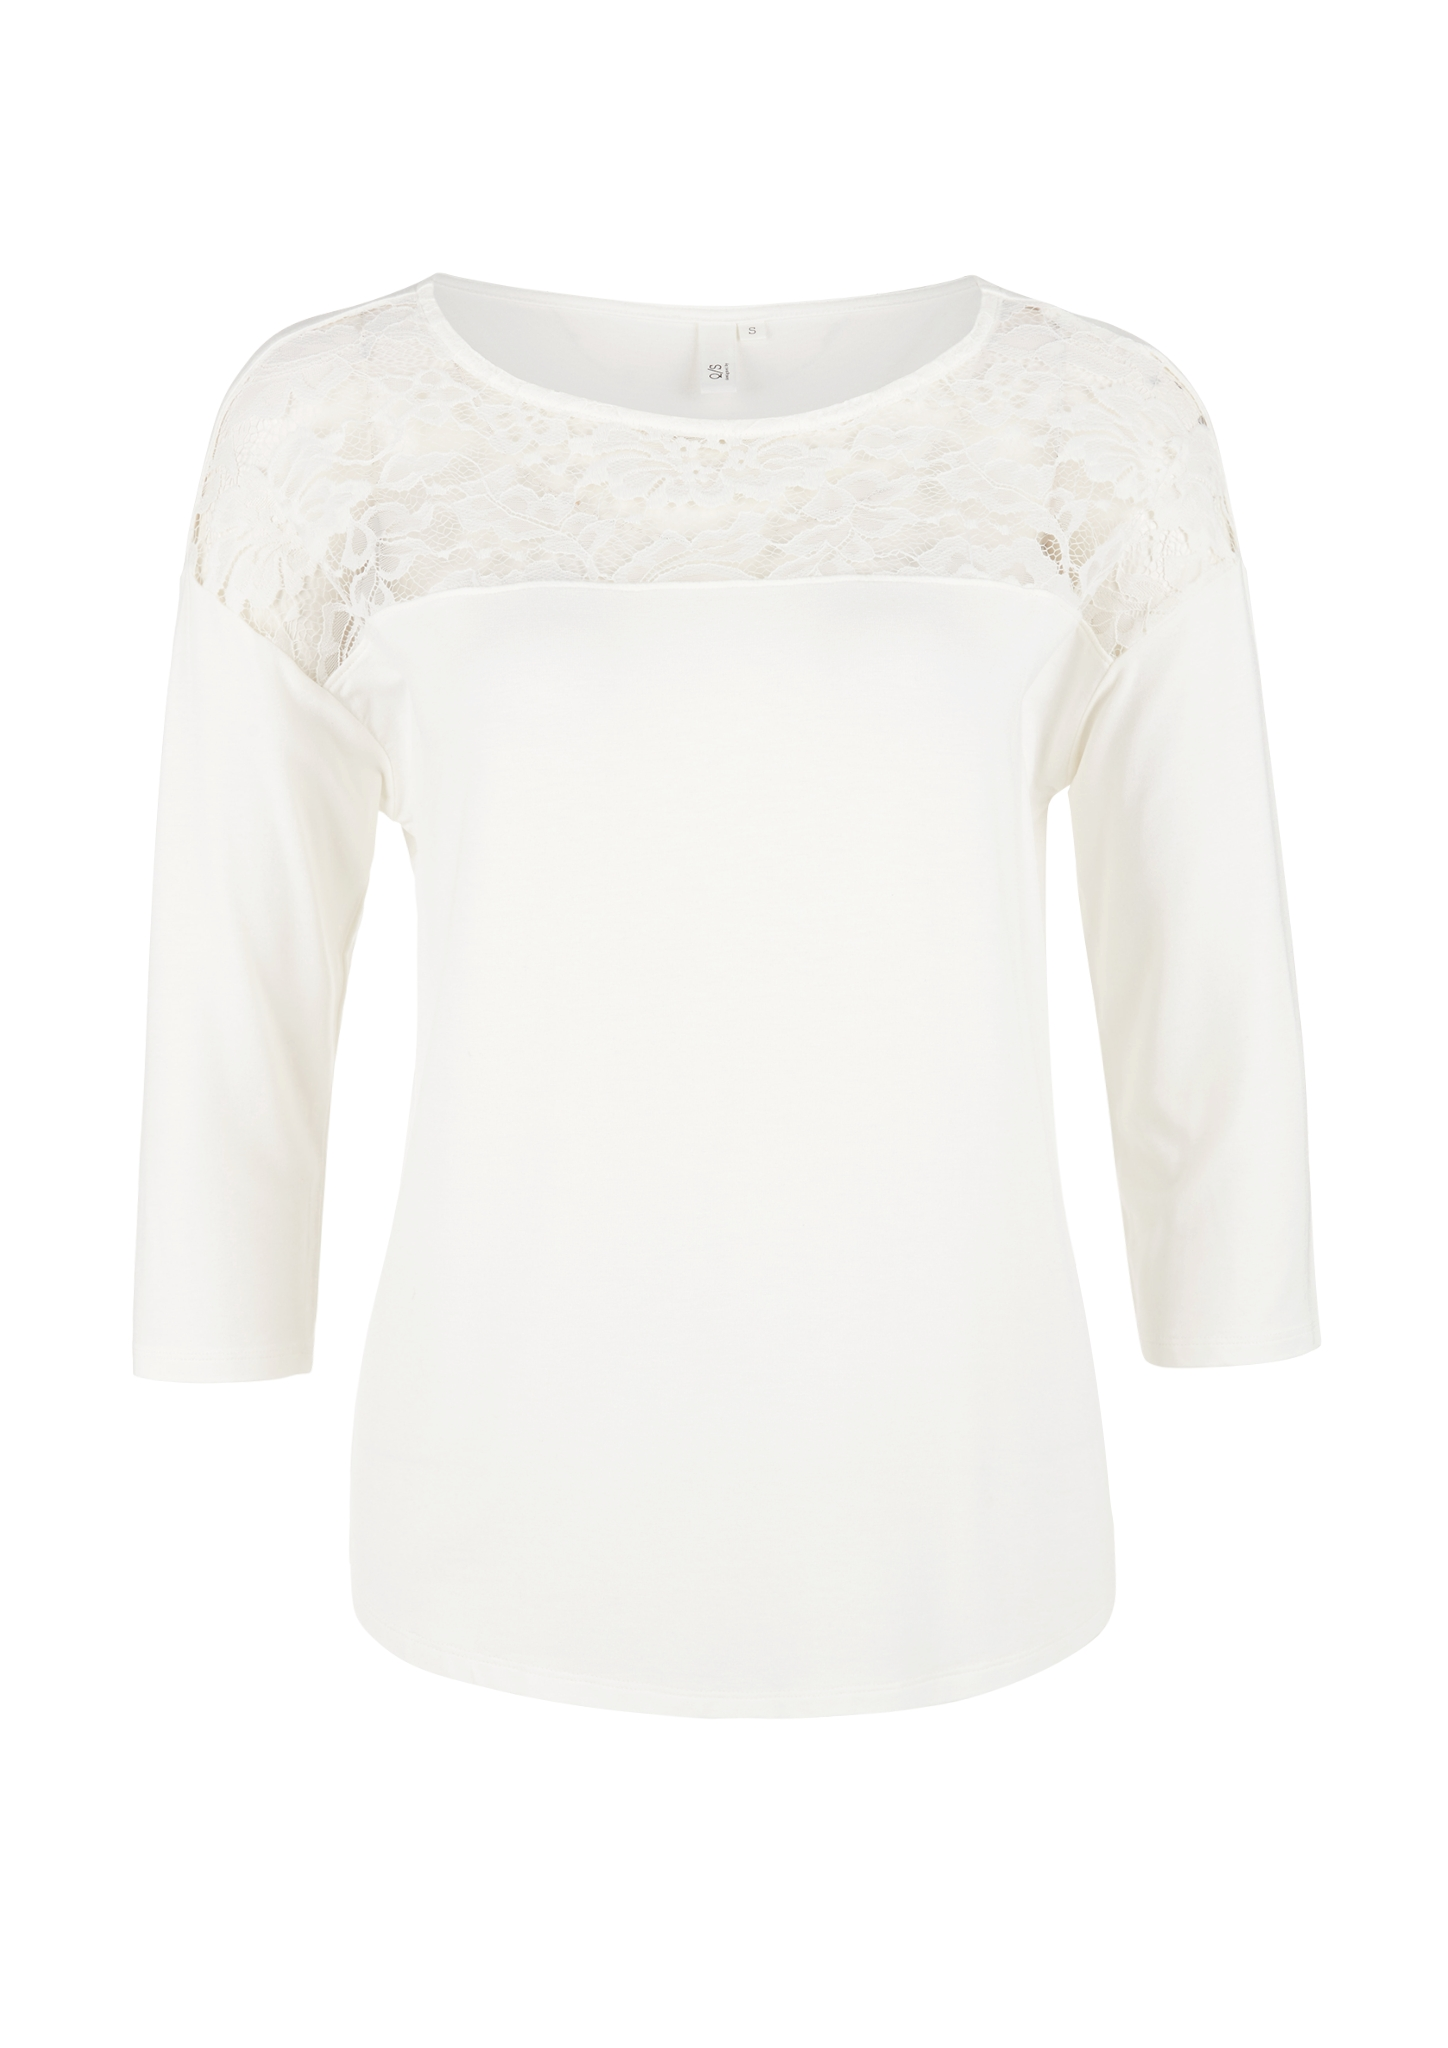 Image of T-Shirt 3/4 Arm